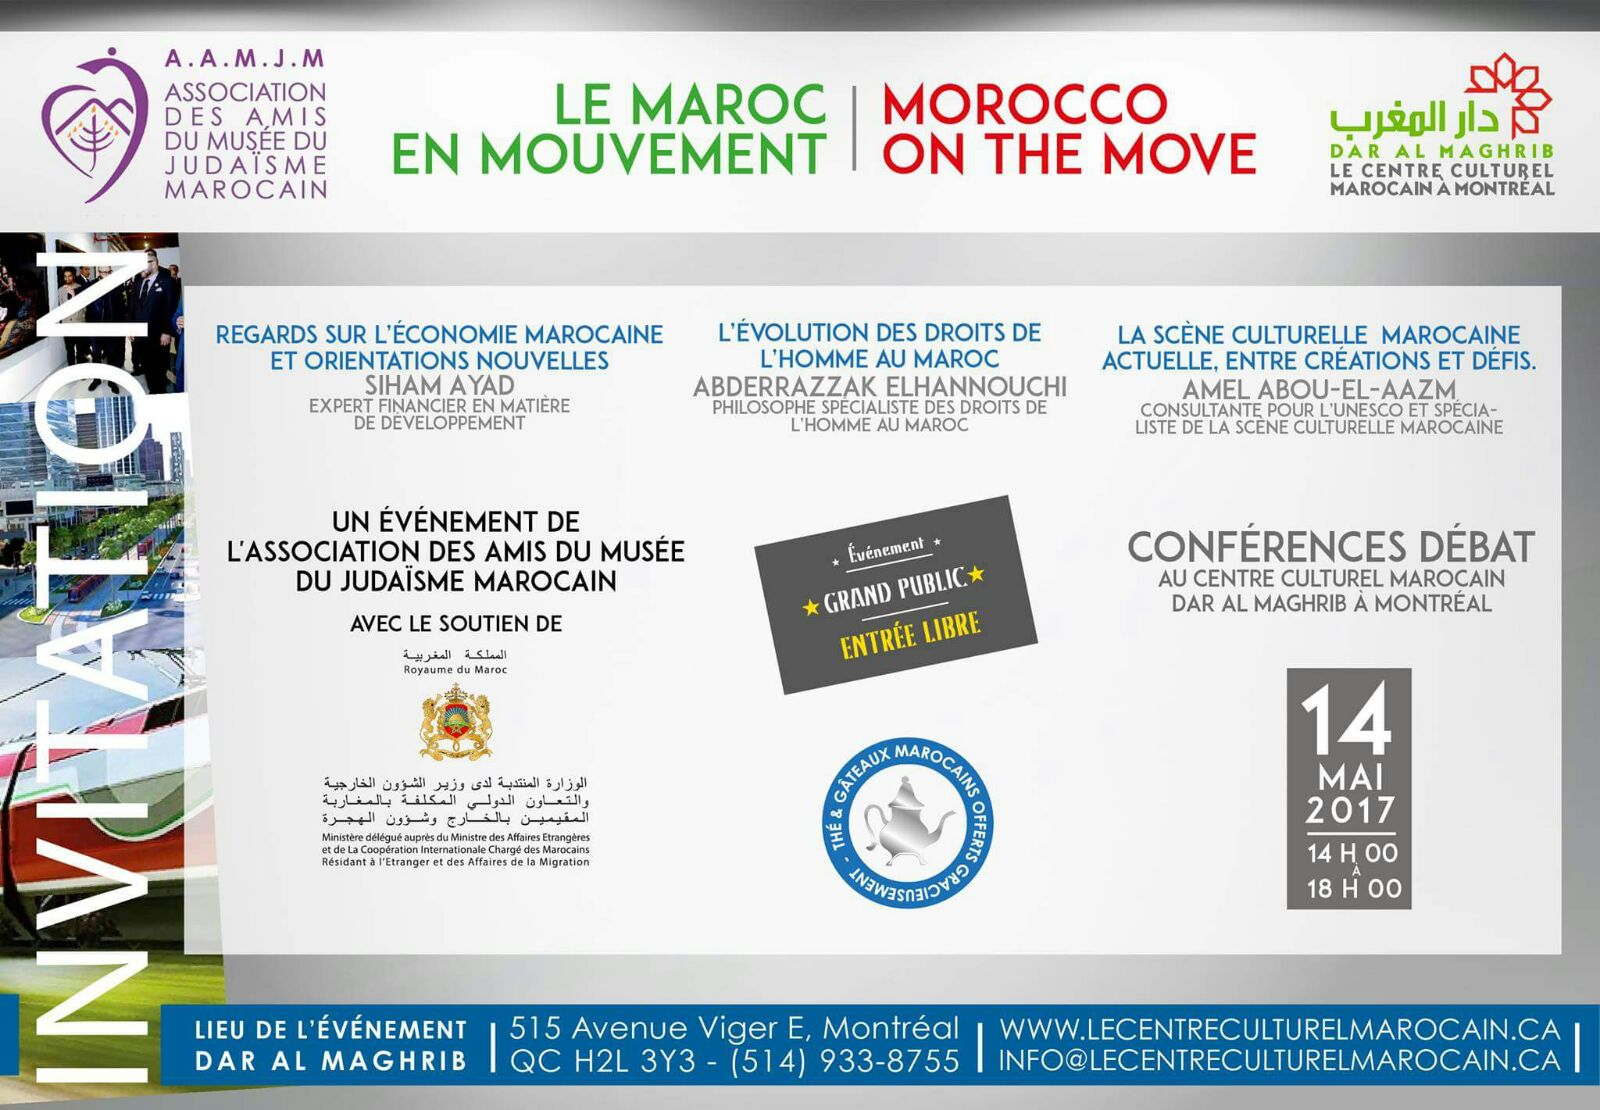 MOROCCO ON THE MOVE/LE MAROC EN MOUVEMENT